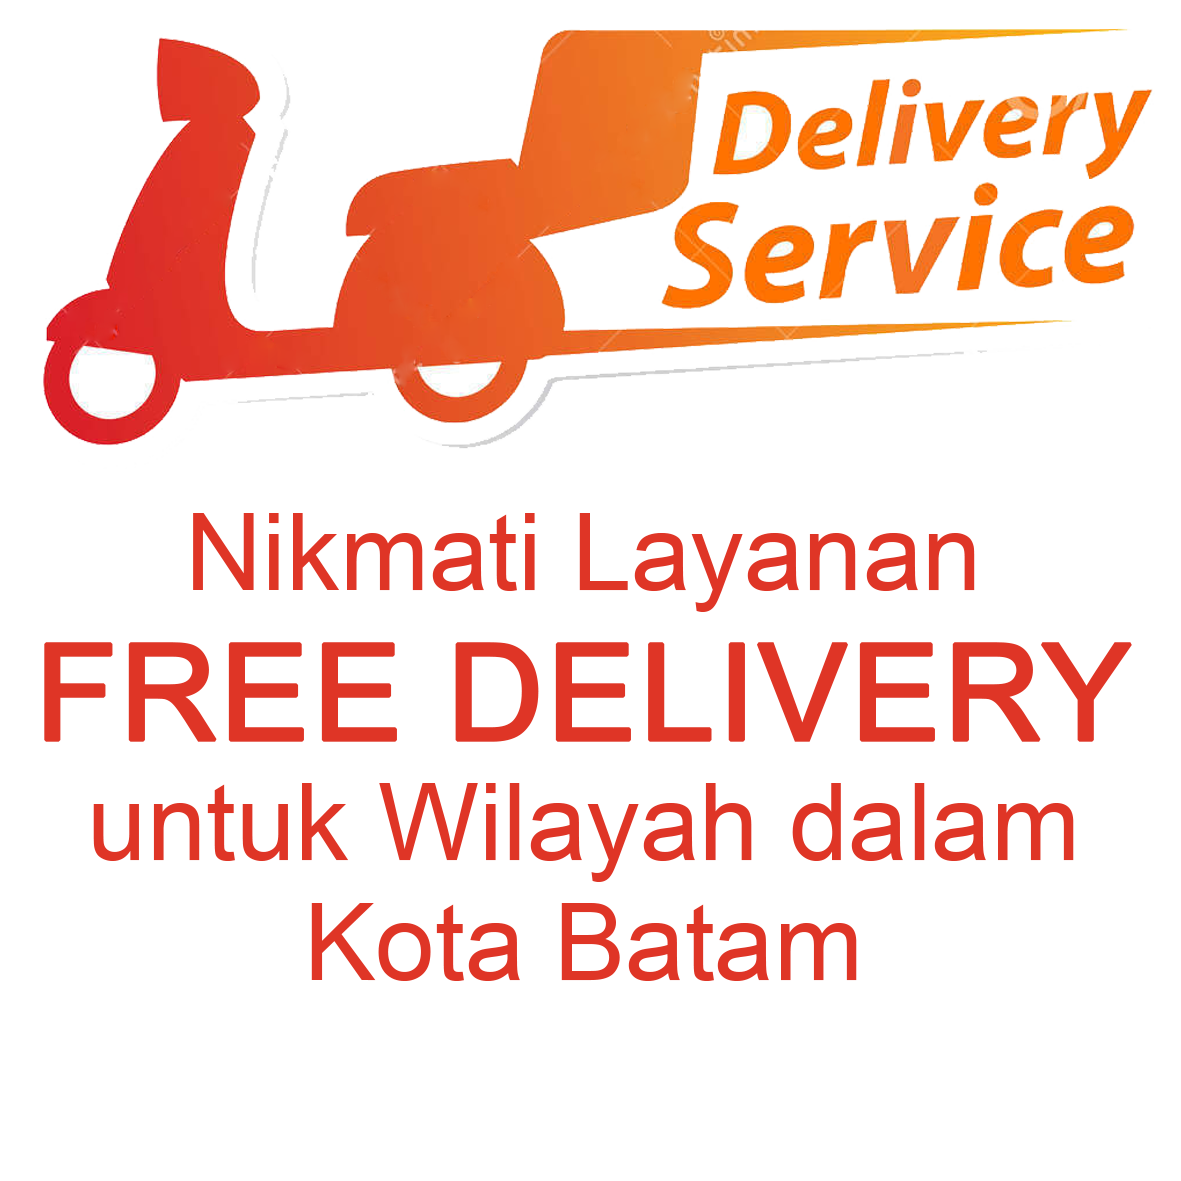 Free-Delivery-Service